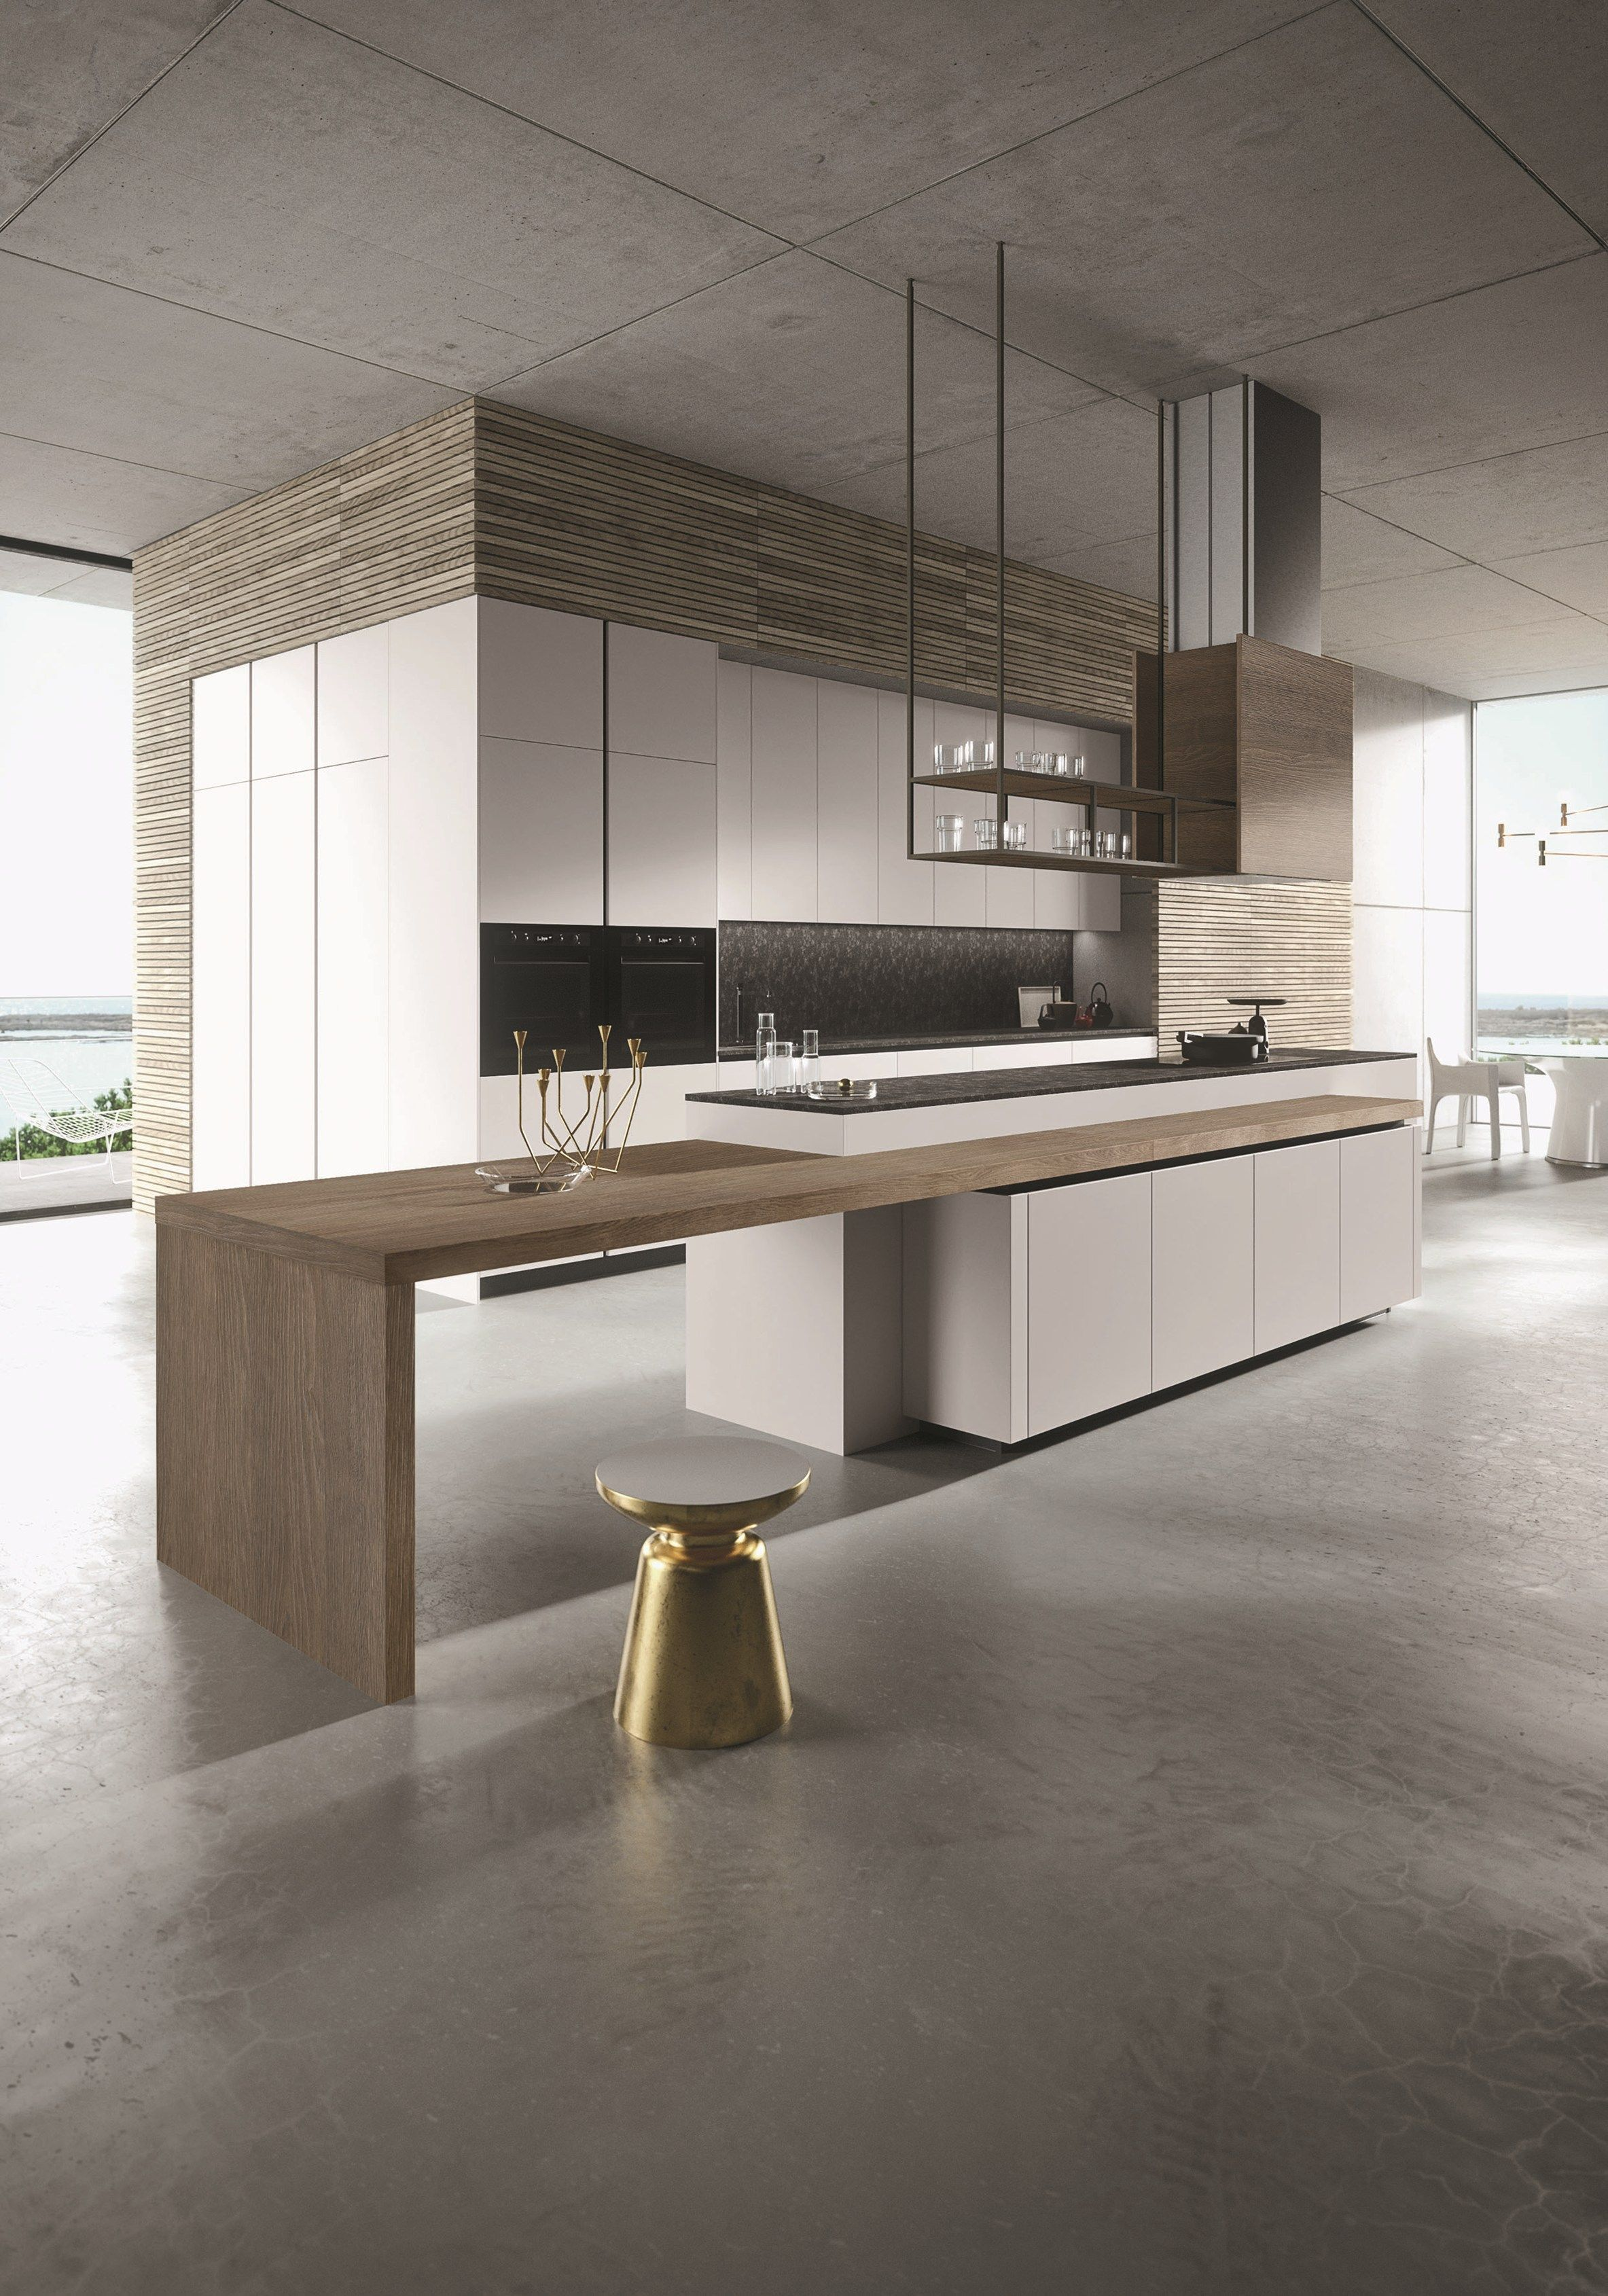 17+ Great Kitchen Island Ideas - Photos and Galleries ...